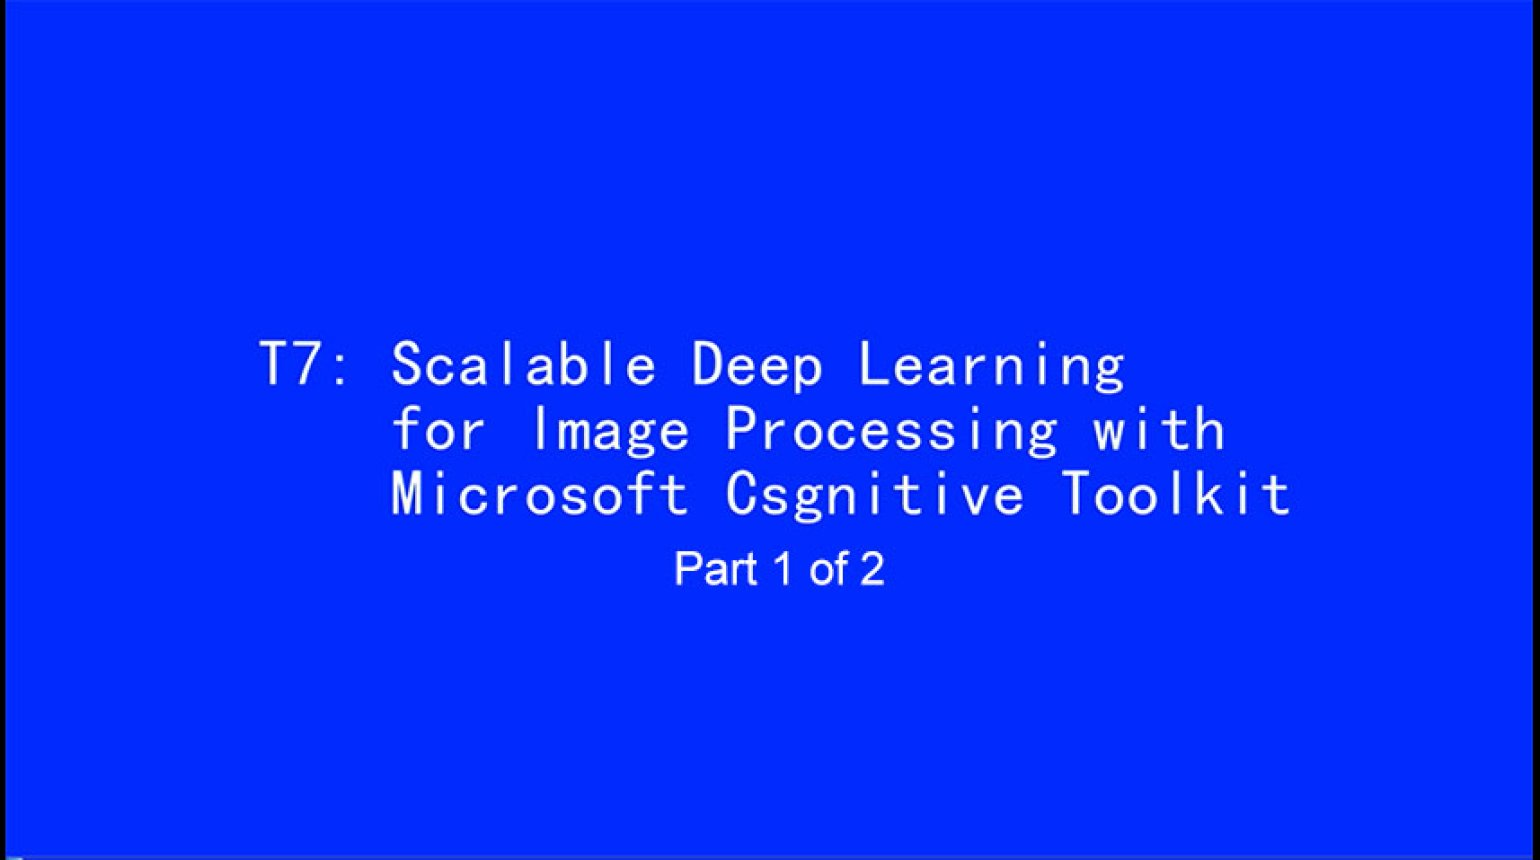 ICIP 2017 Tutorial - Scalable Deep Learning for Image Processing with Microsoft Cognitive Toolkit [Part 1 of 2]